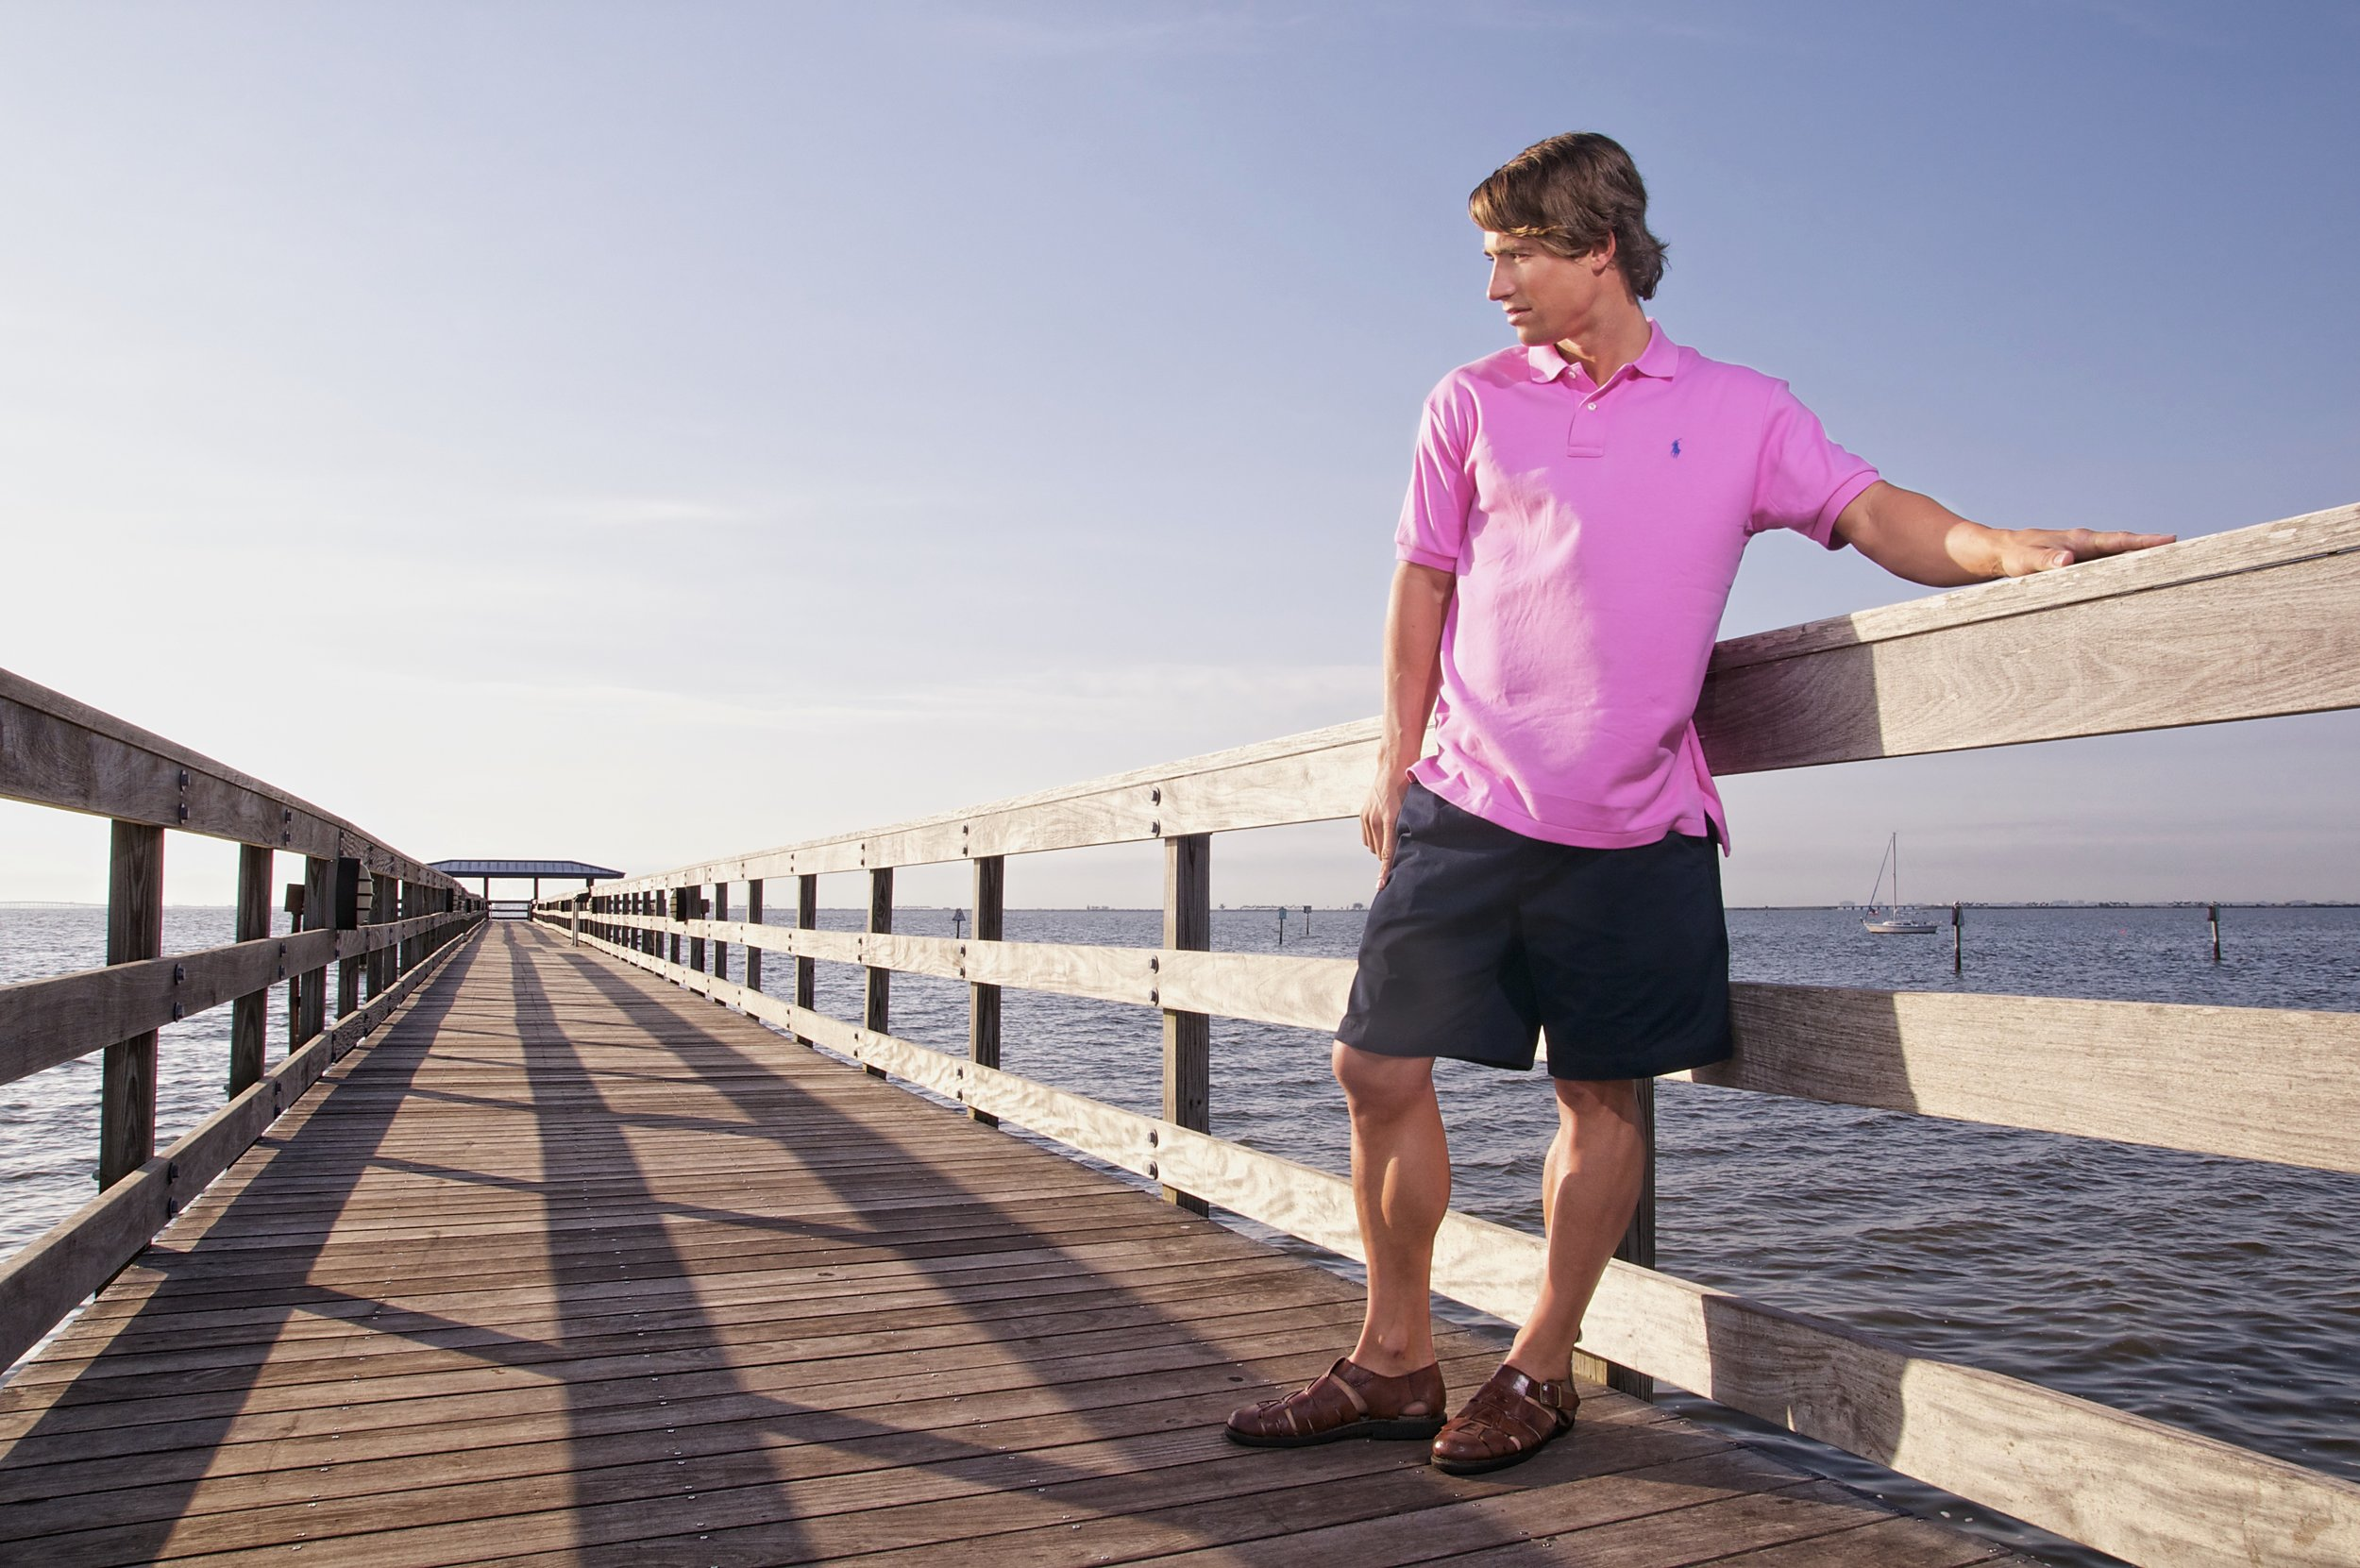 safety-harbor-modeling-by-jason-collin-20374.jpg